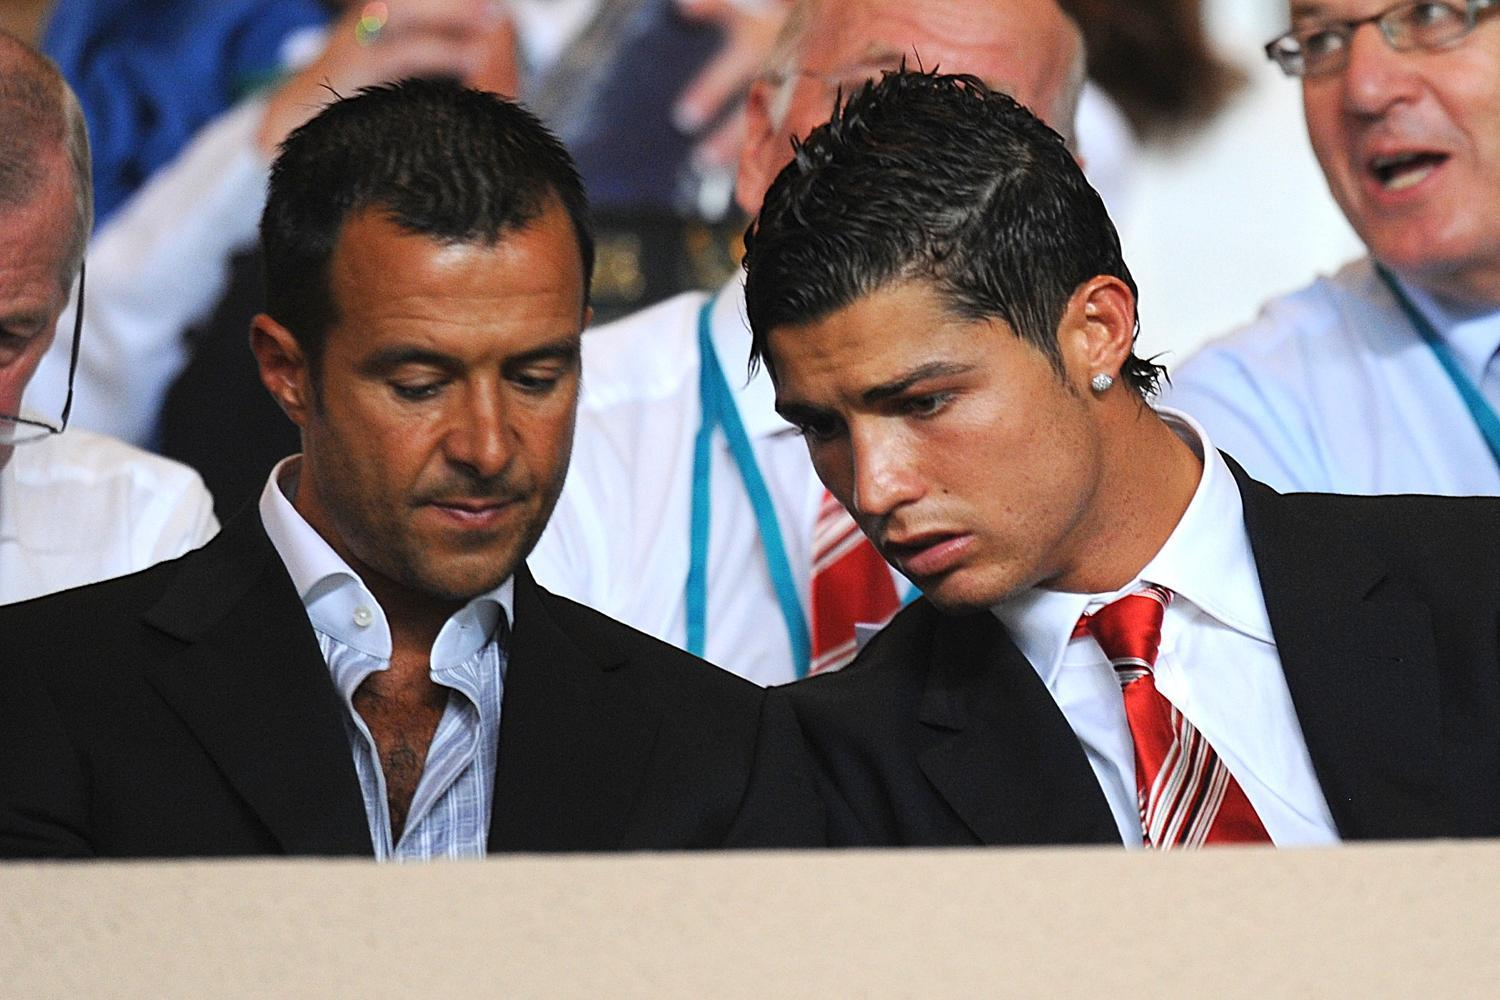 Jorge Mendes and Ronaldo